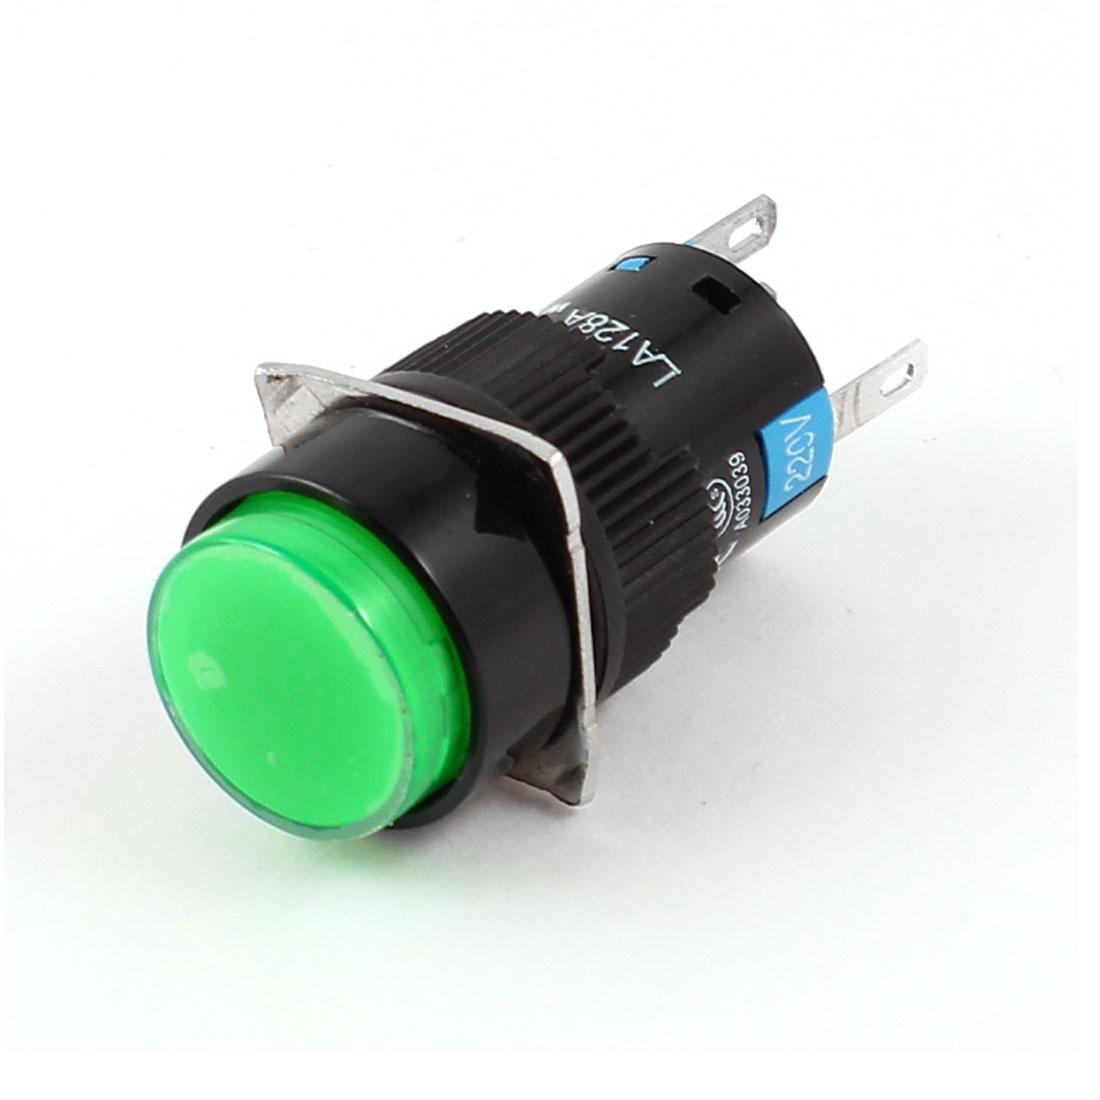 Green Light SPDT 5 Pin Latching Round Push Button Switch AC250V/220V 5A